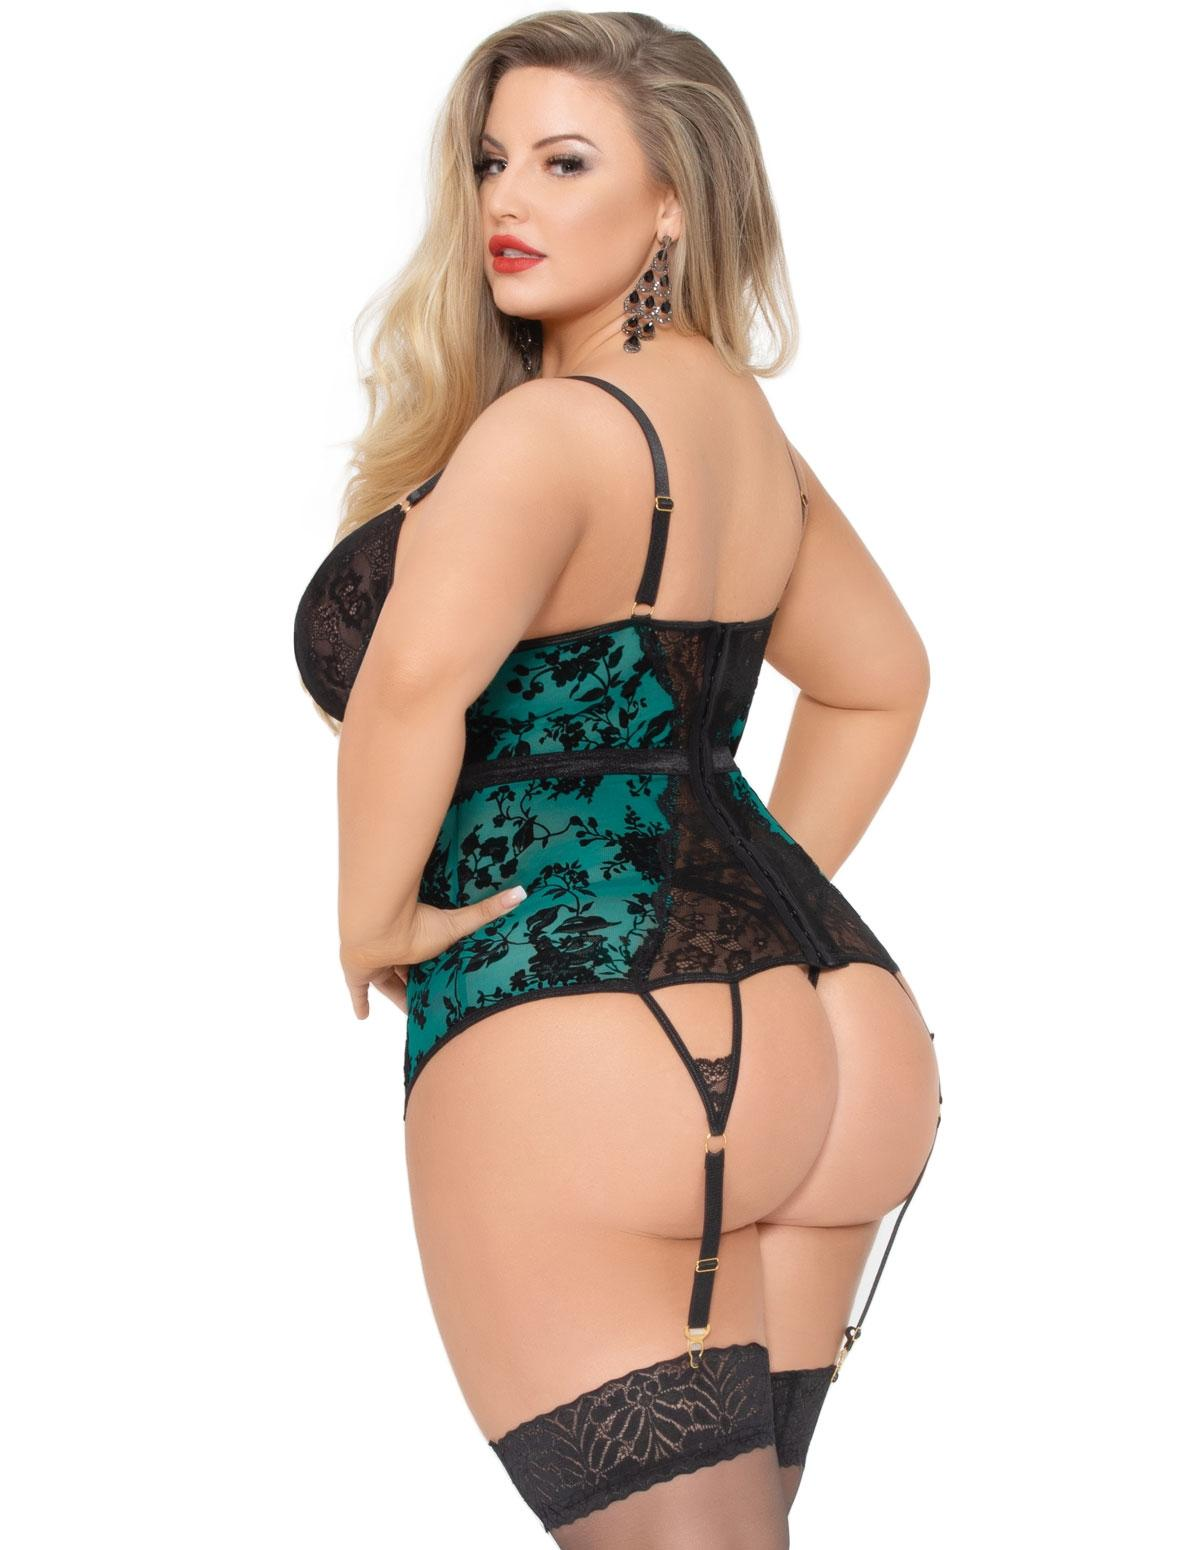 Simply Gorgeous Green Bustier Set rear view